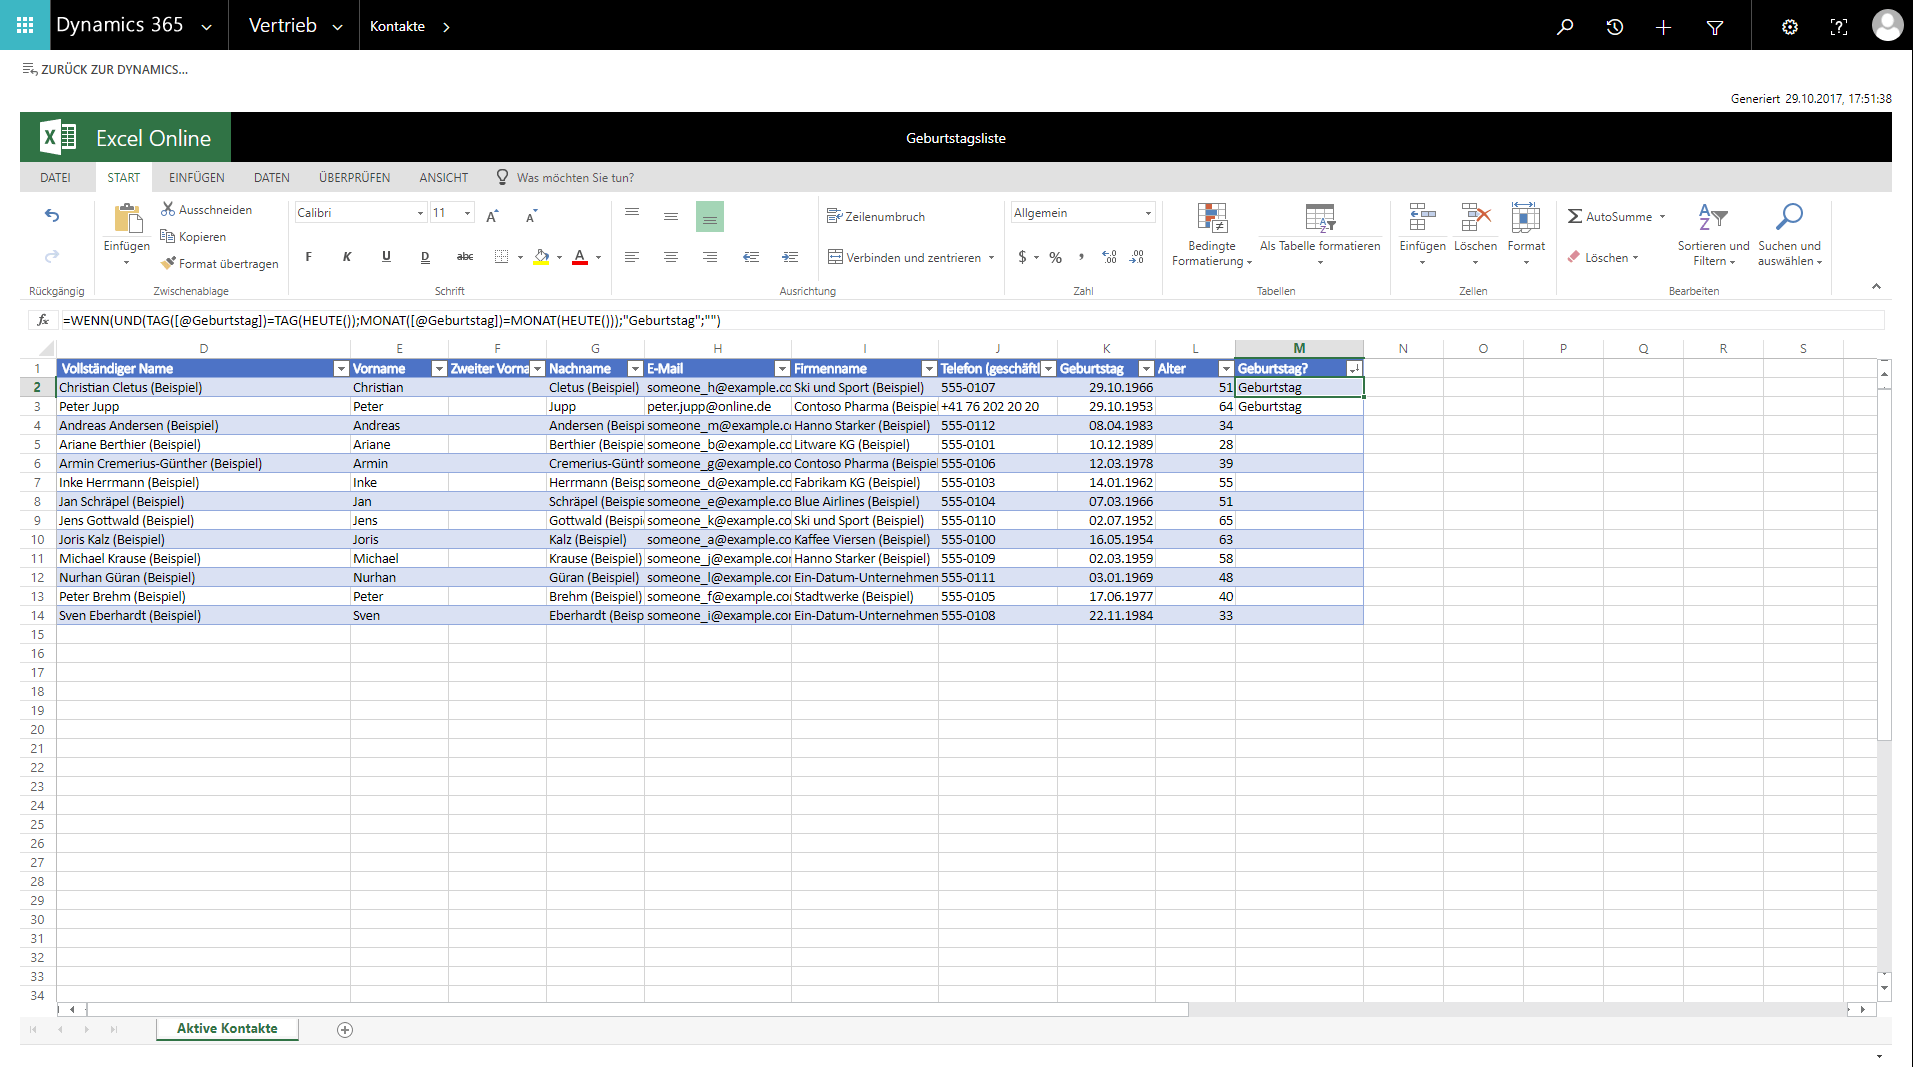 Excel Vorlagen In Microsoft Dynamics 365 Digicomp Blog